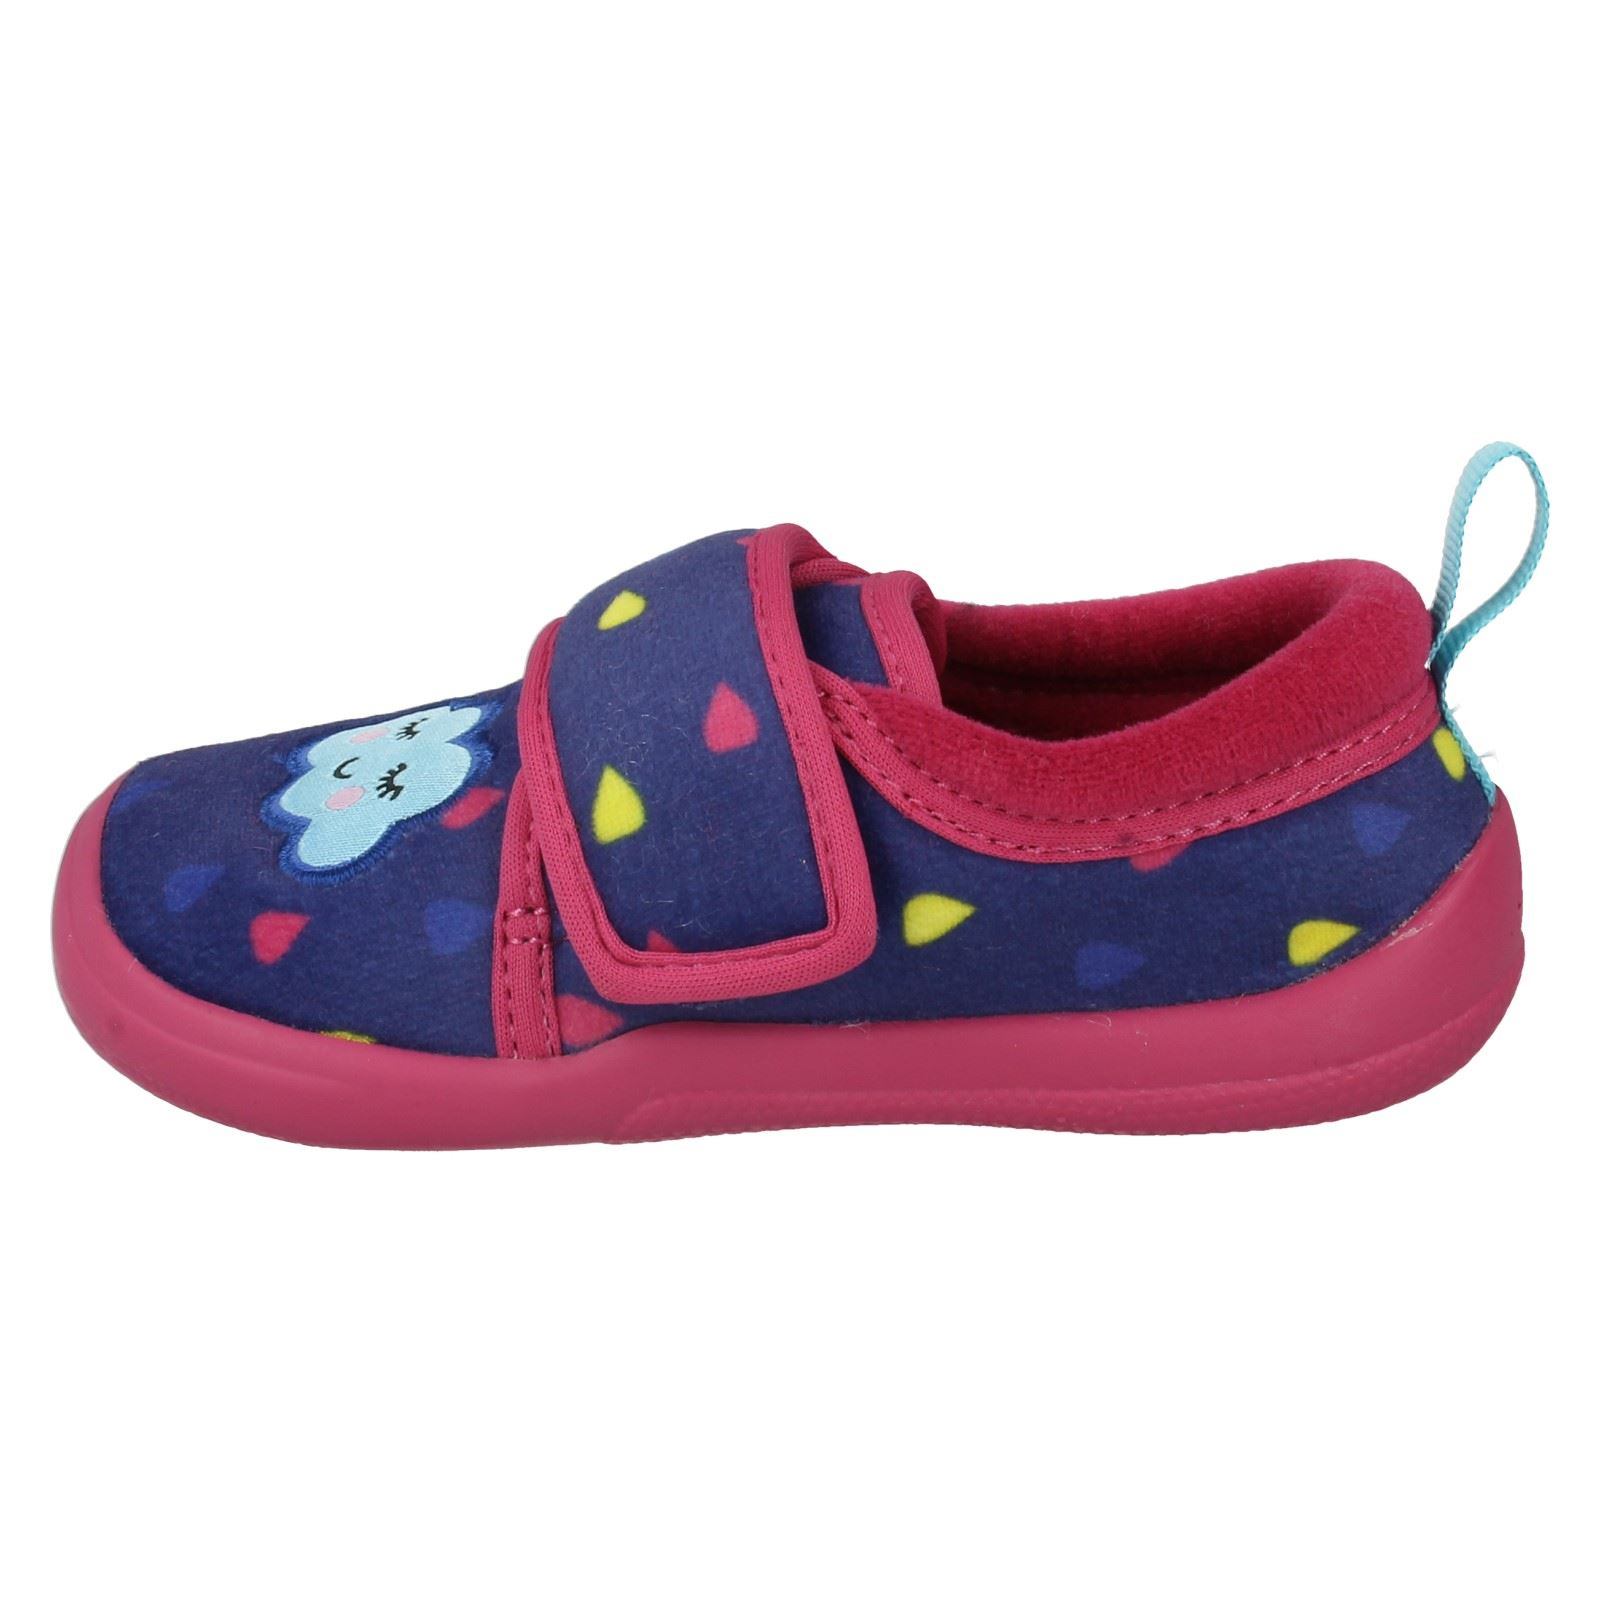 Girls Clarks Slippers The Style - Cuba Pip